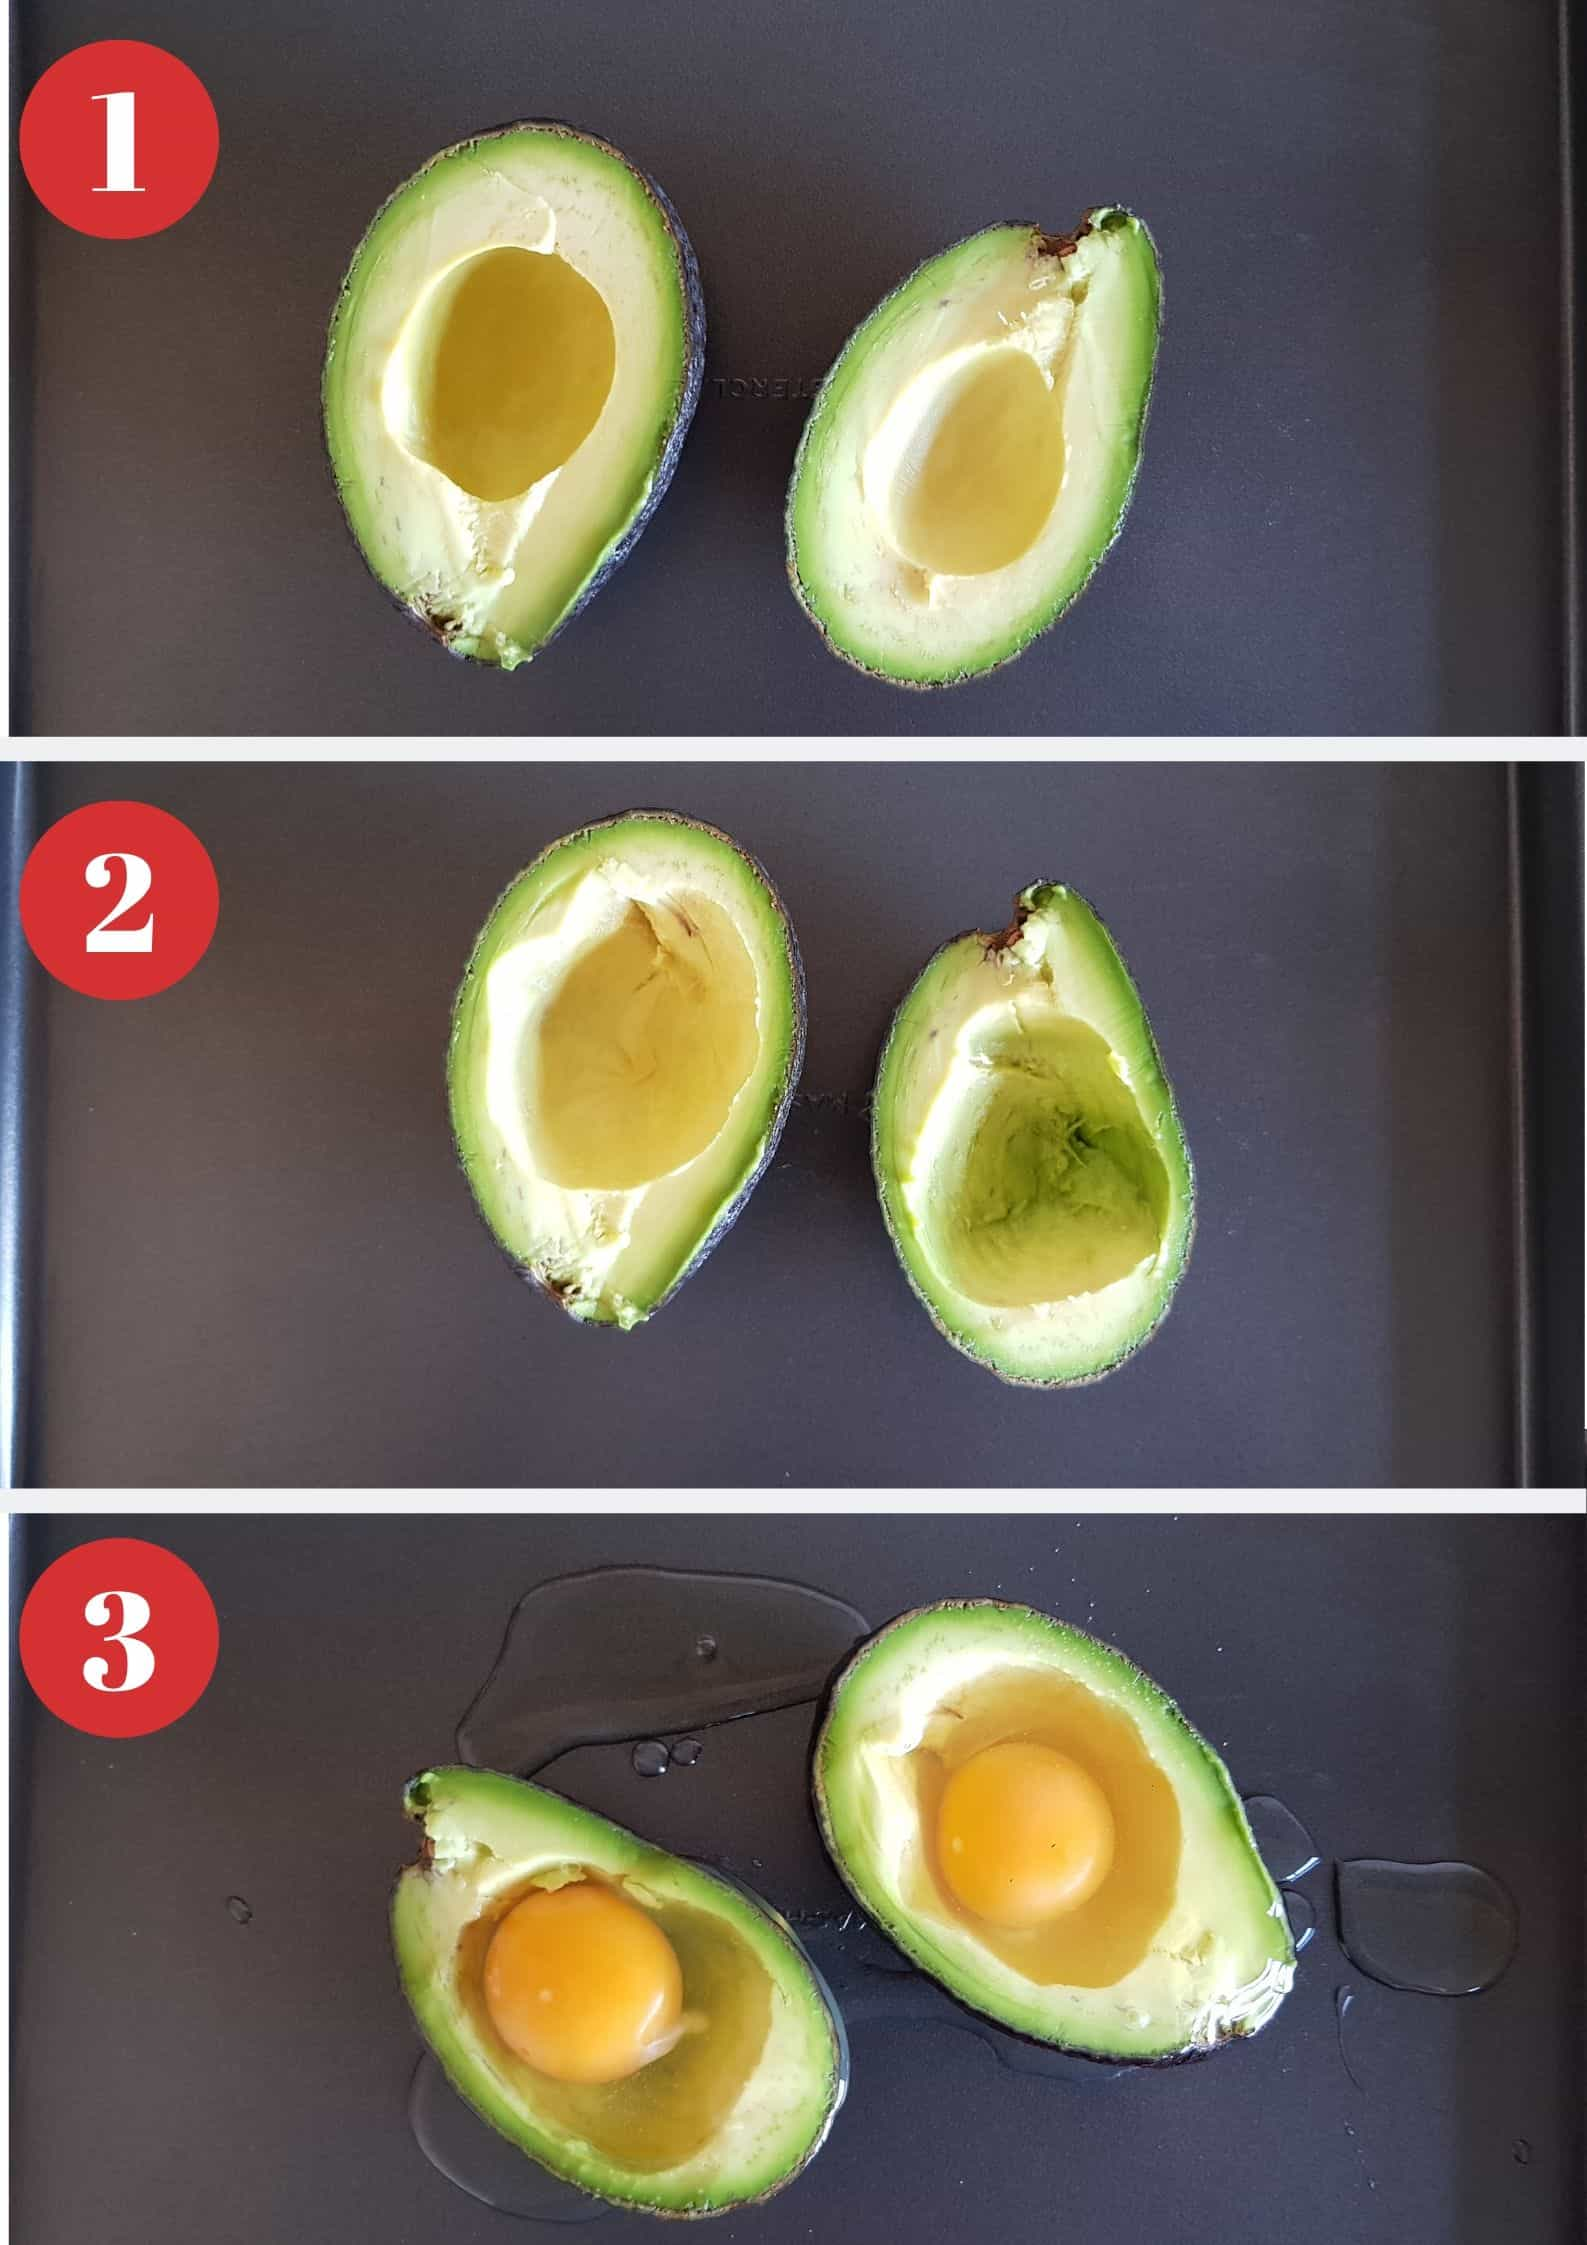 Infographic showing how to make egg in avocado.